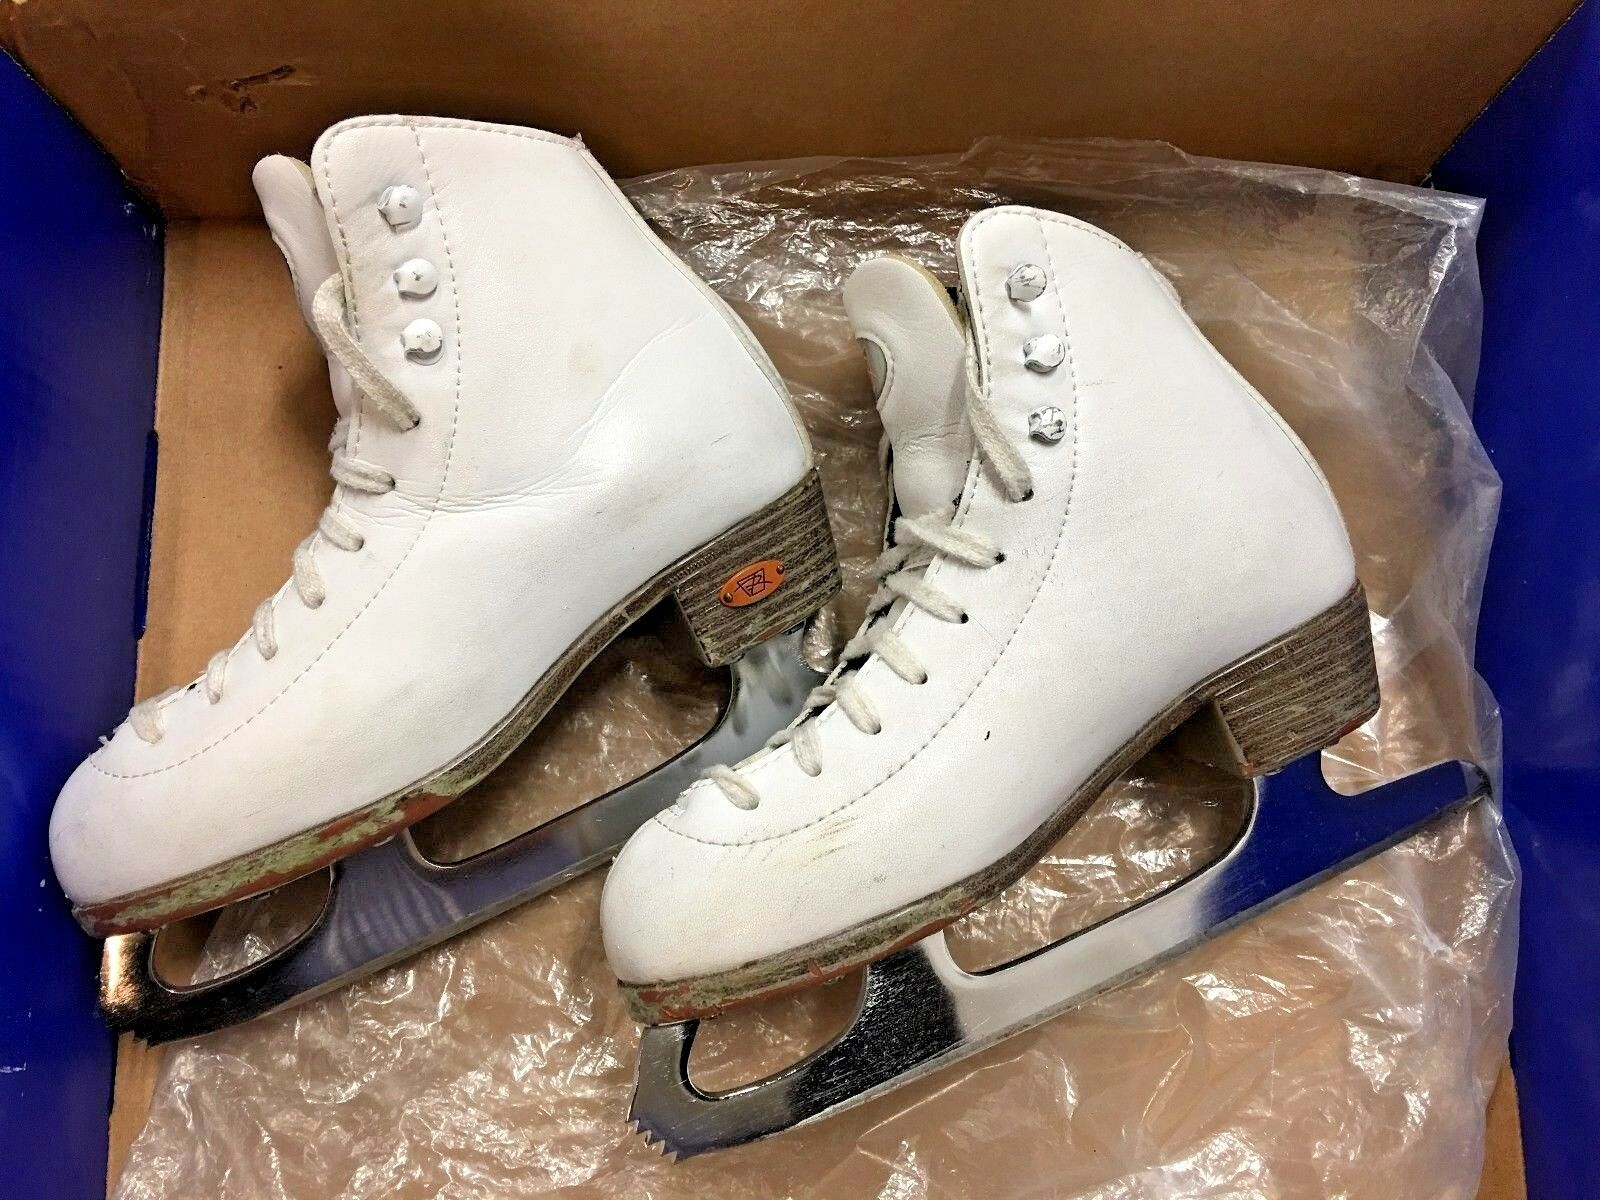 Riedell 133 DM Dimensione 2 Girls Ice Skating sautope Used for 1 year.